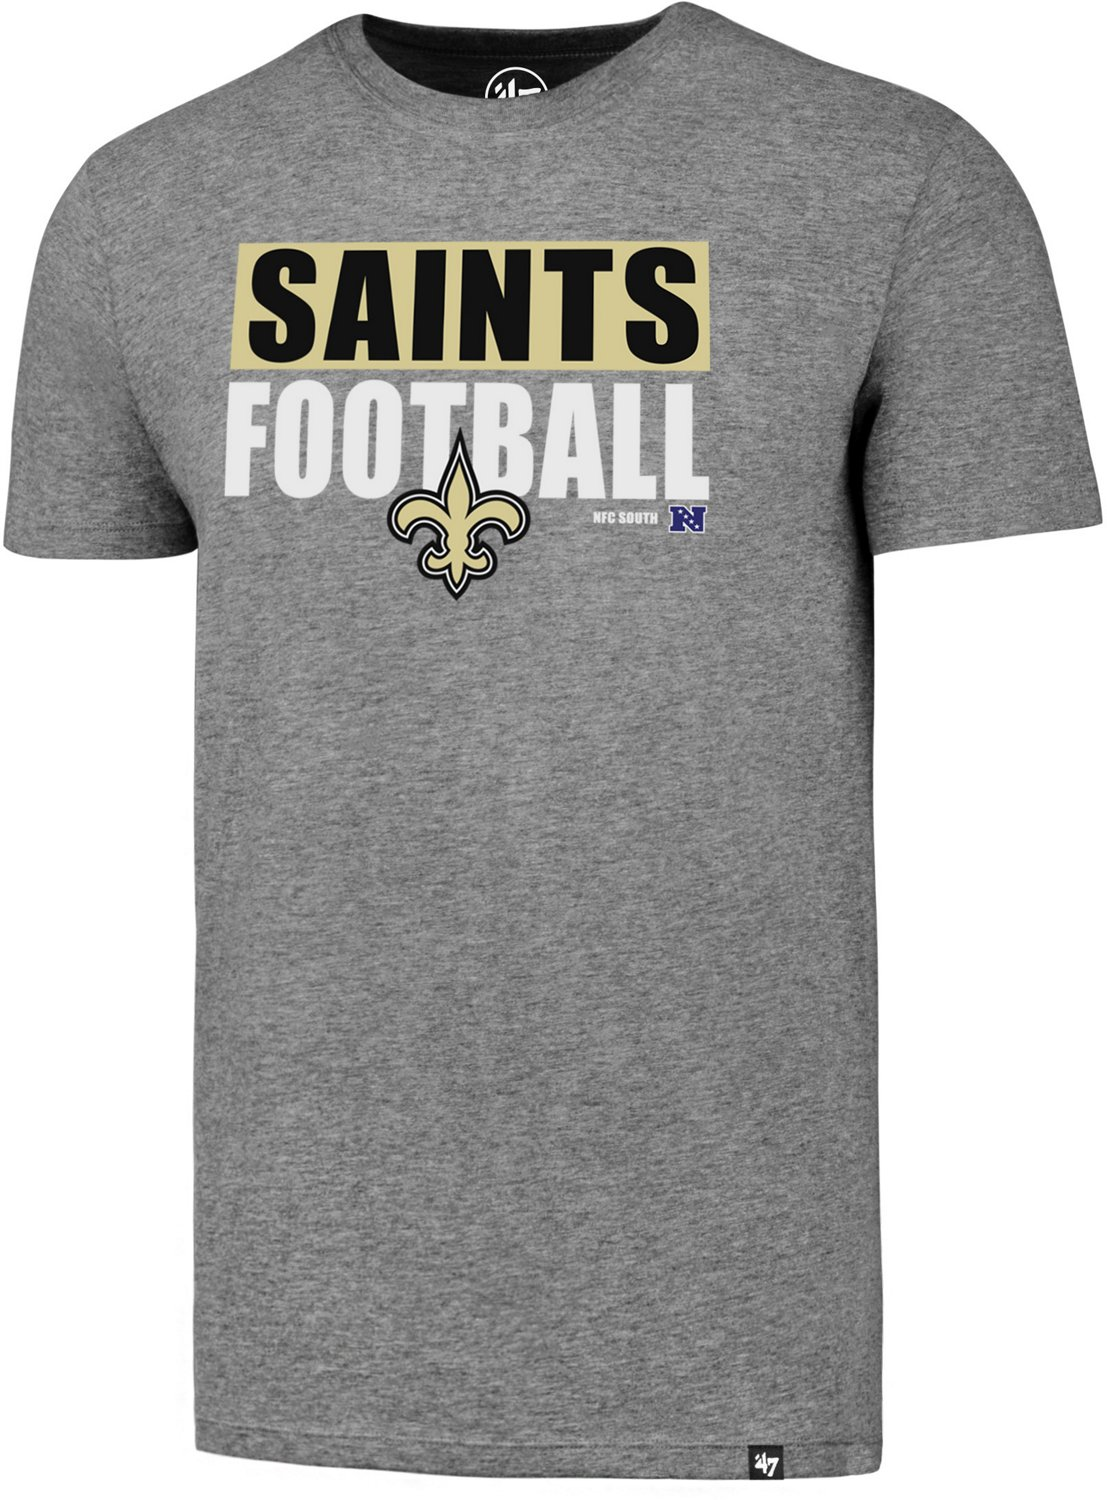 size 40 0f23a 3261a '47 New Orleans Saints Football Club T-shirt